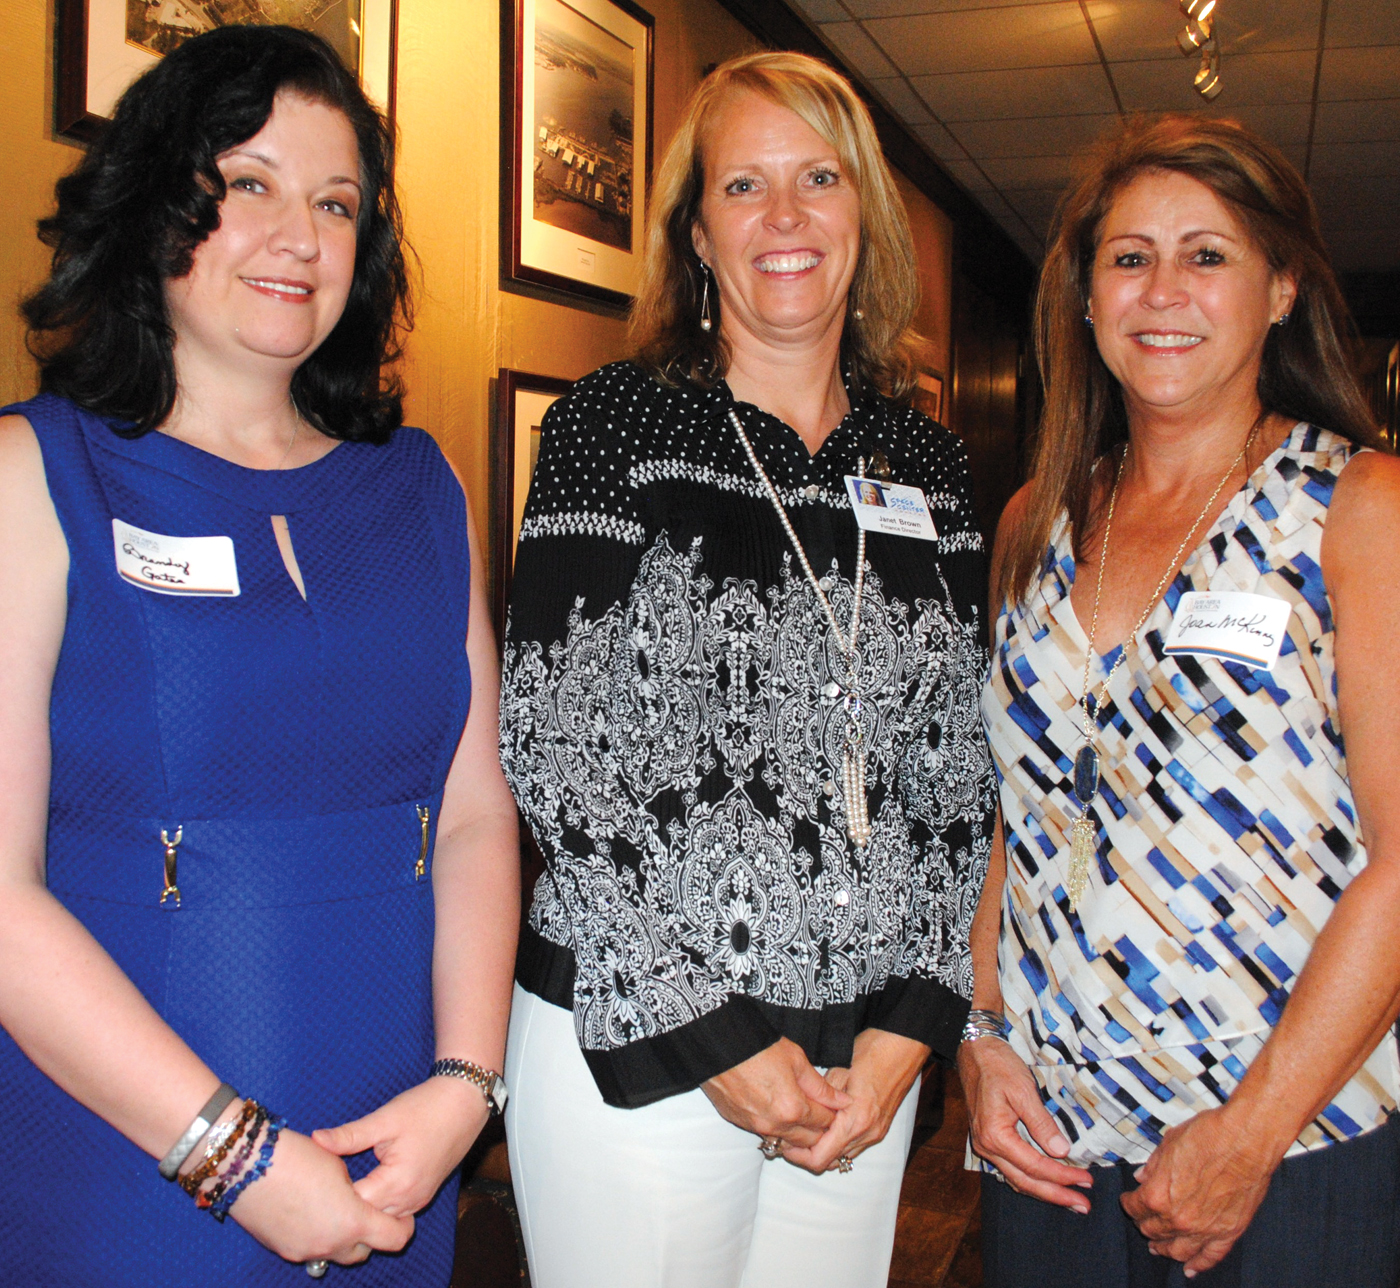 Brandy Gates of UTMB, Janet Brown of Space Center Houston and Joan McKinney of Norman Frede Chevrolet, from left, arrive at Lakewood Yacht Club for the BAHEP reception.